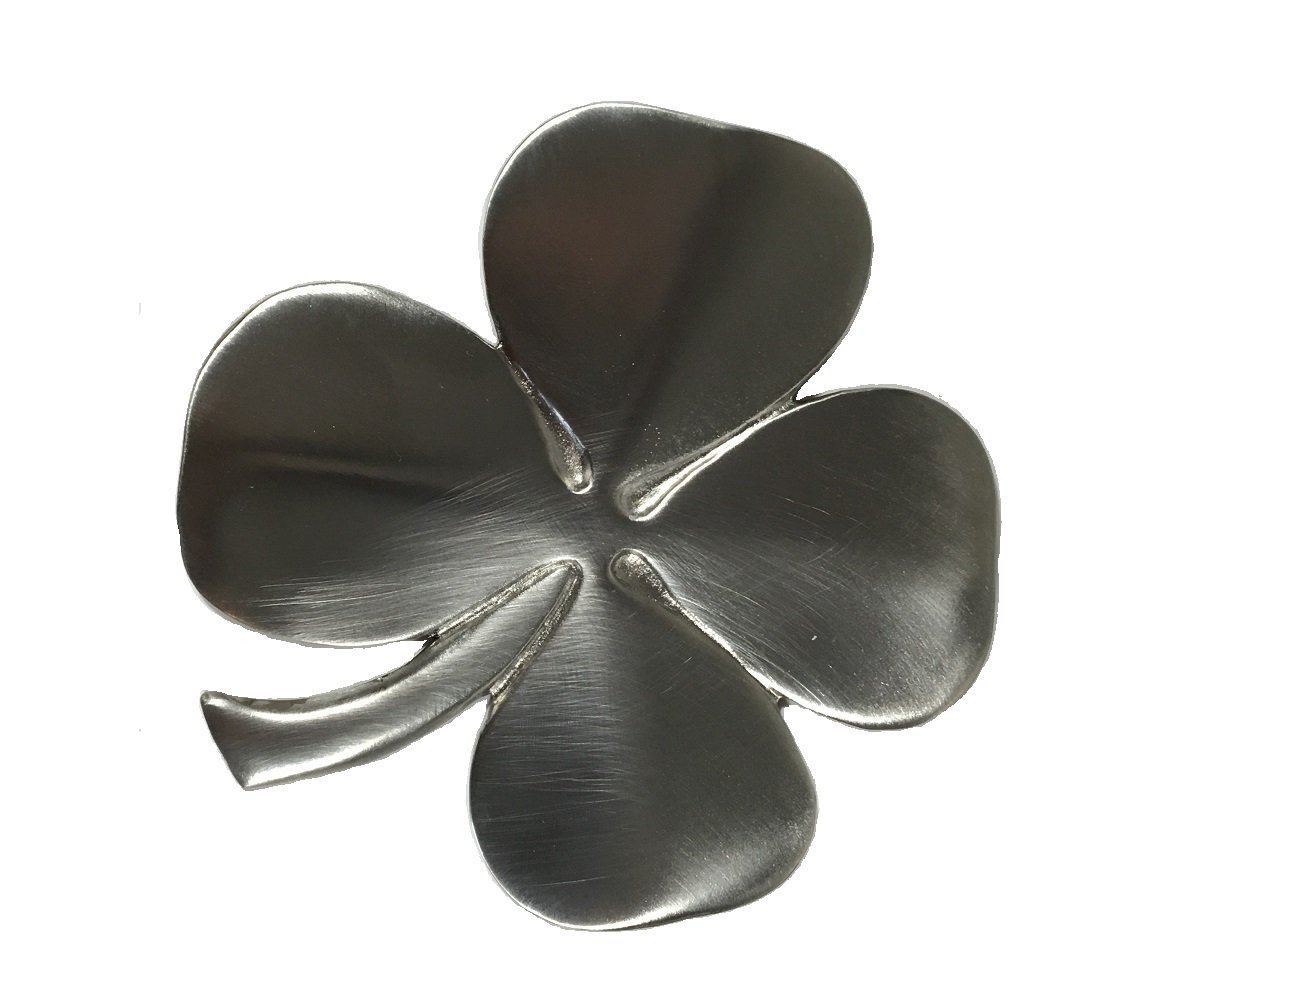 St. Patrick's Day Home Decoration Shamrock Wall Hanging Robert Emmet Company Lucky Four Leaf Clover Ireland Wall Hanging Silver Plated Pewter Irish Blessing Wall Decor